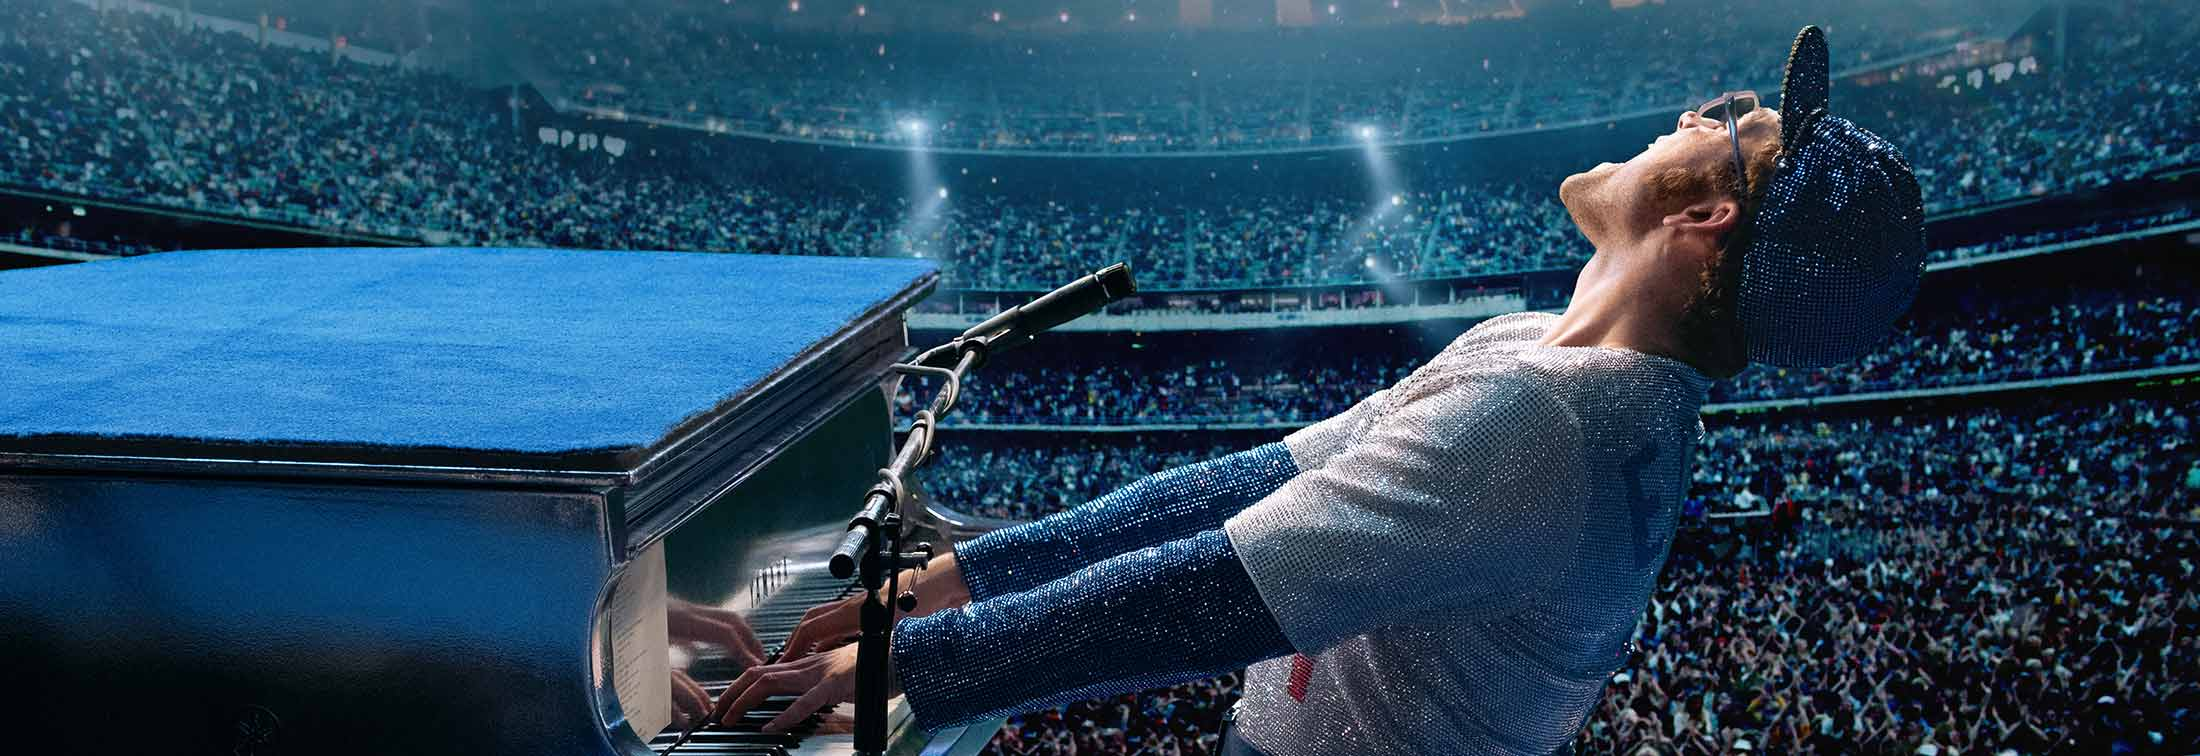 Rocketman - Take flight with Taron Egerton's biopic on Elton John